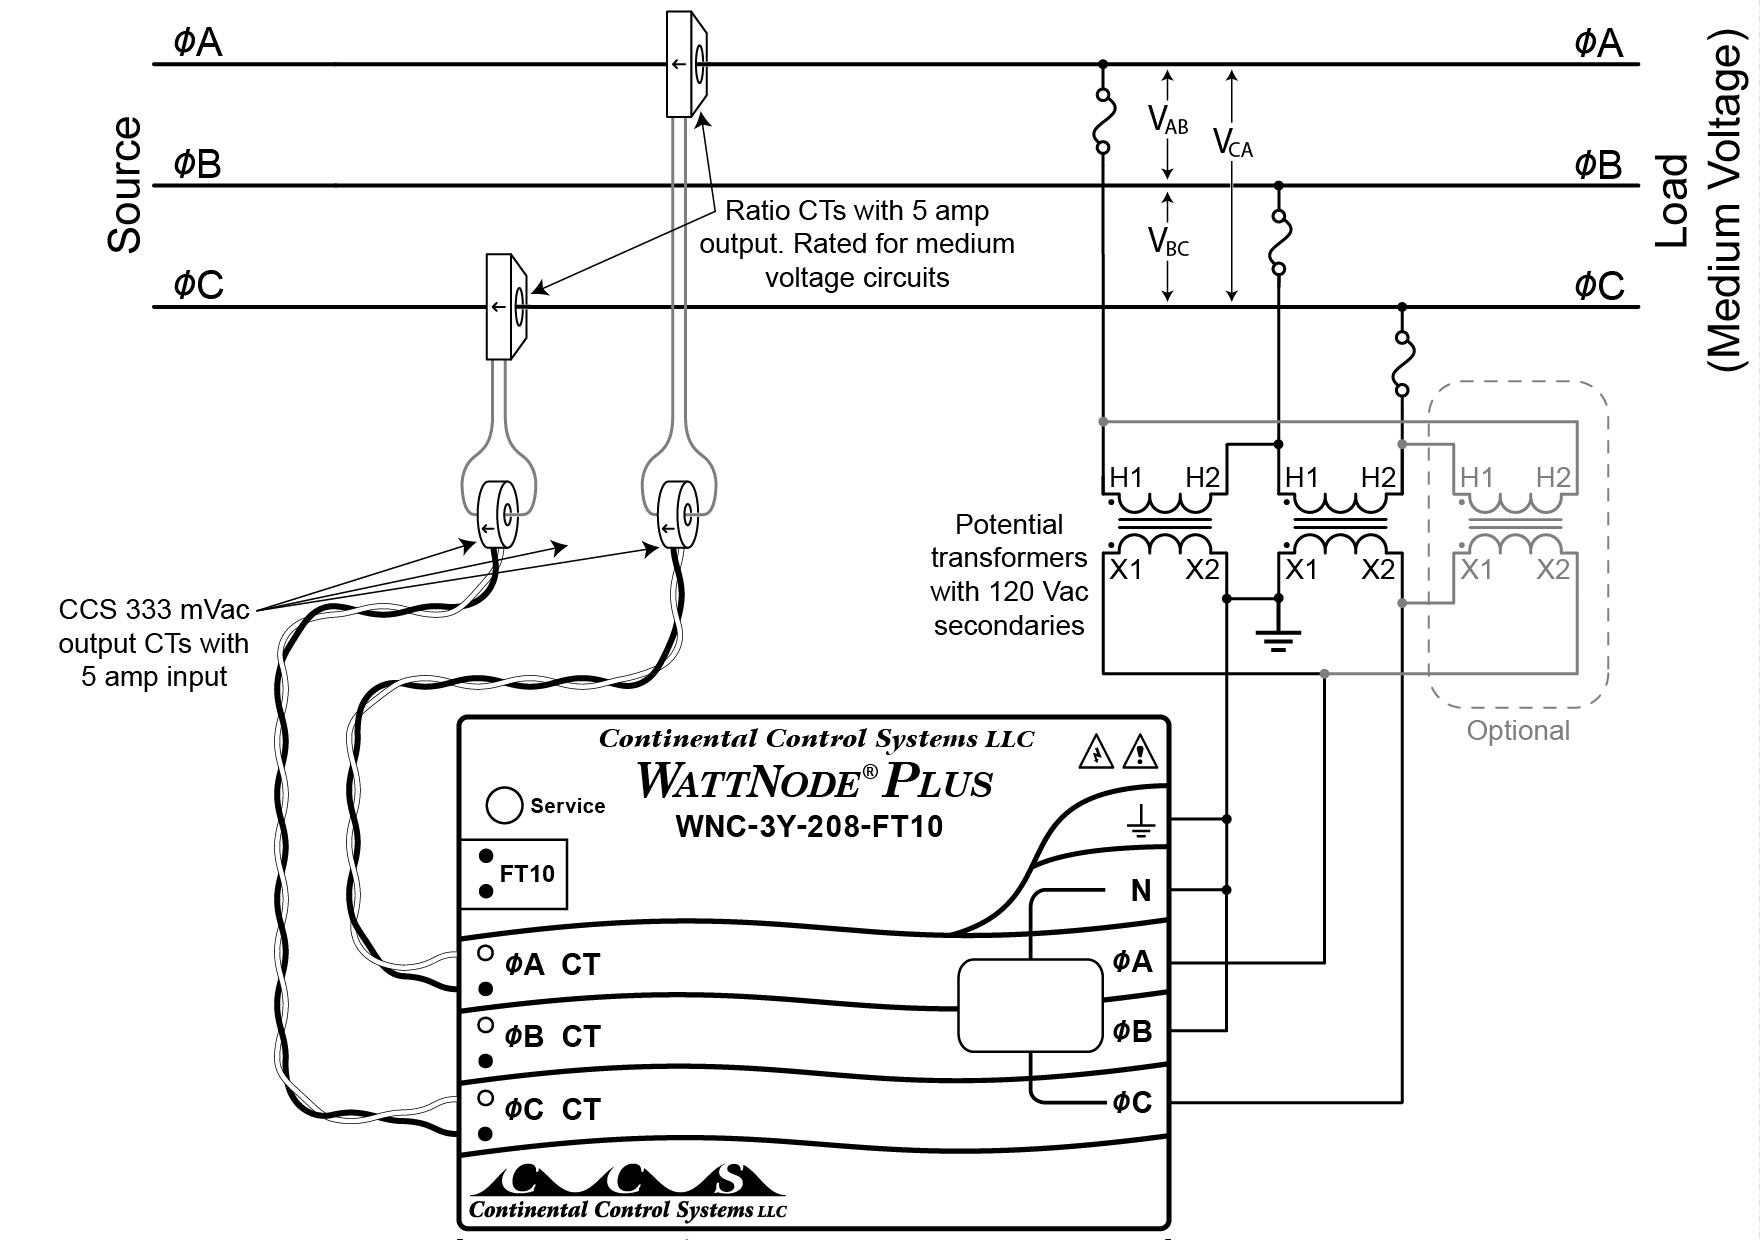 Transformer Bank Schematic Wiring Library Figure 3 Monitoring A Delta Circuit Using Potential Transformers